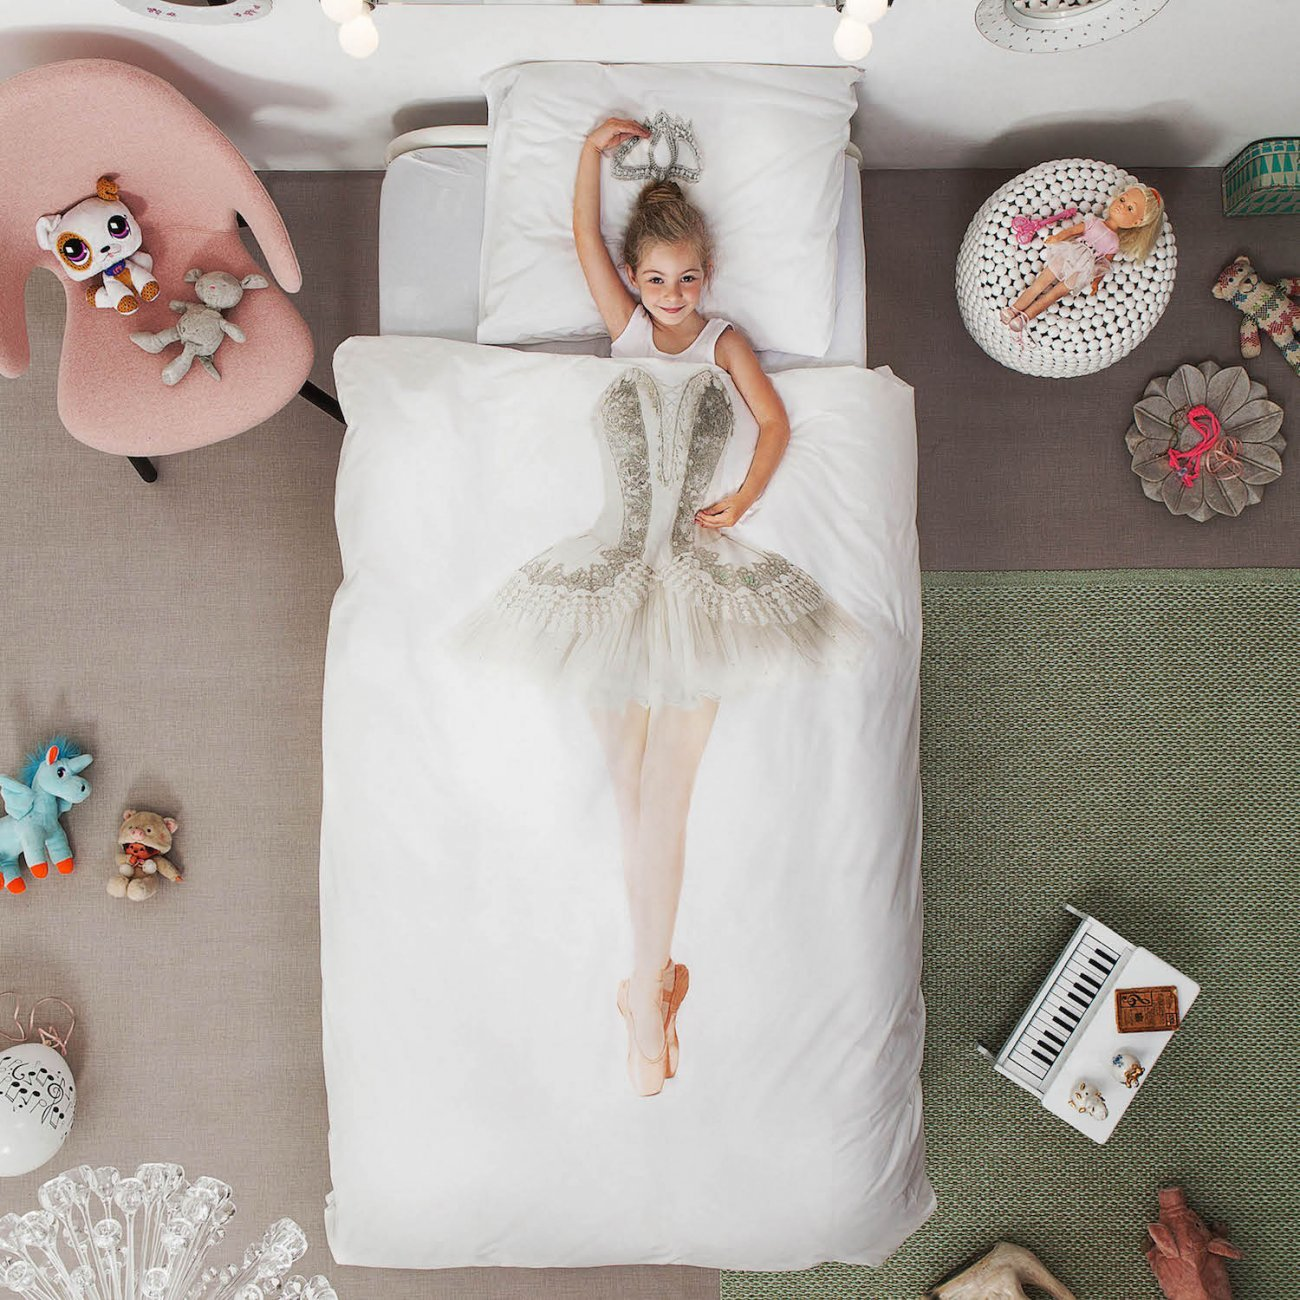 Snurk Ballerina Duvet Cover & Pillowcase